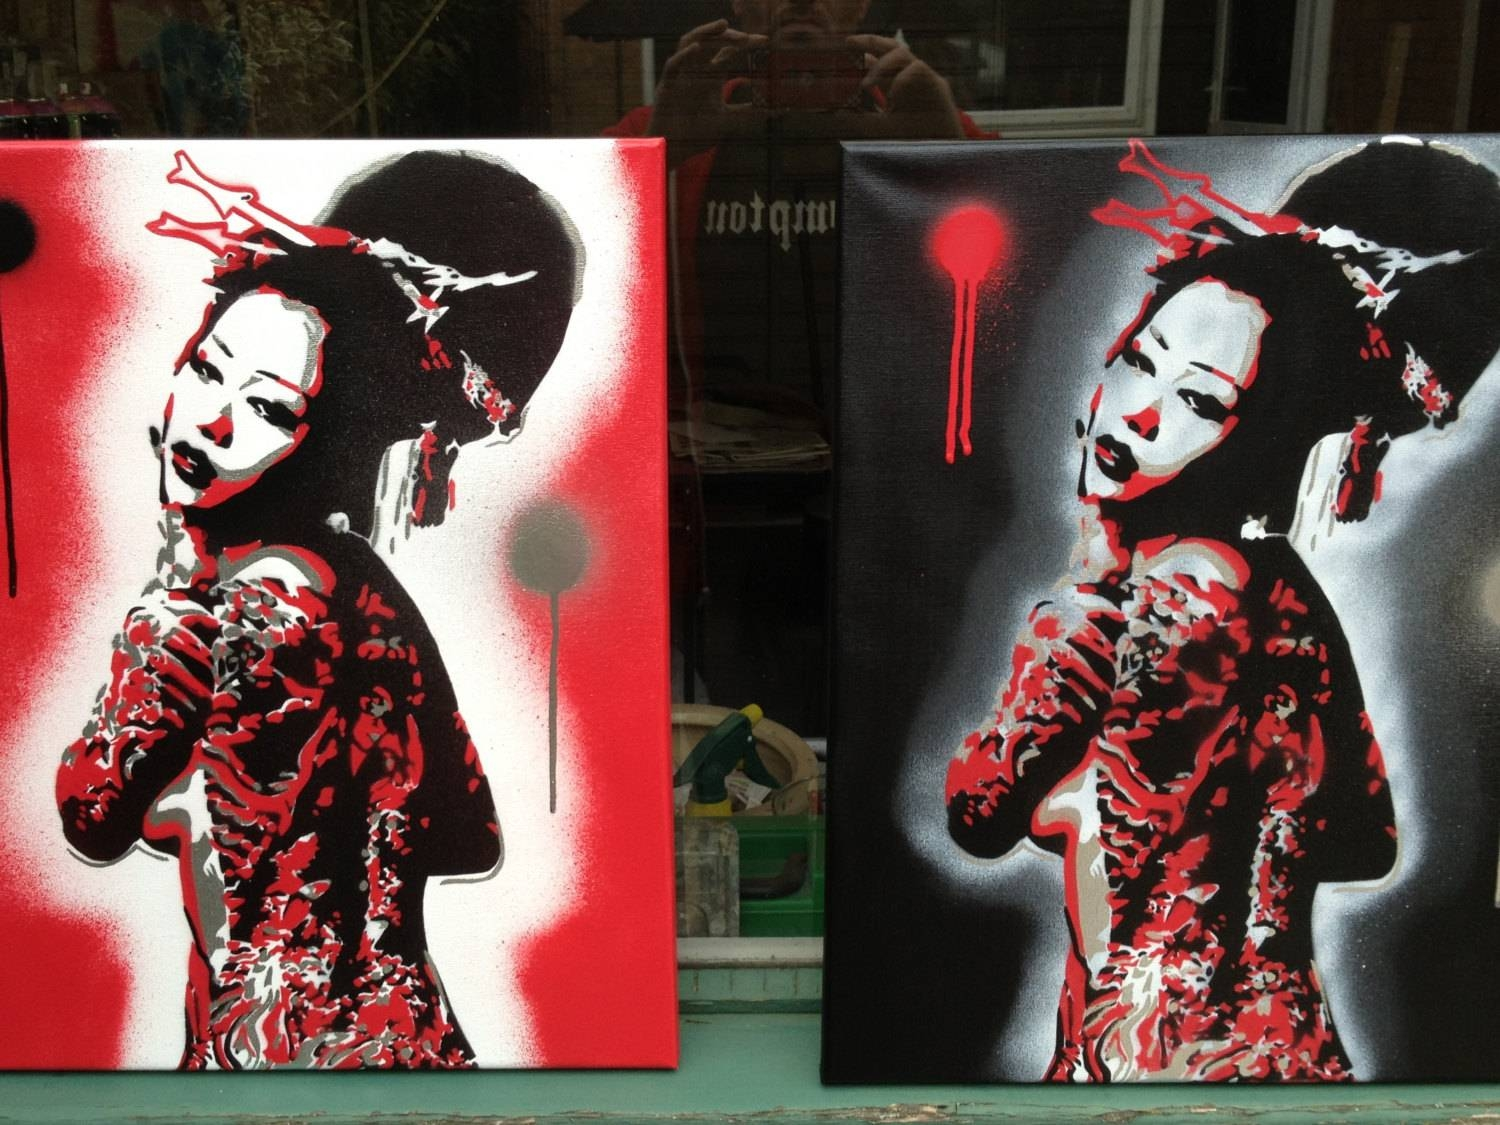 Geisha Painting Nude Tattooed Girl Stencil Art Spray Paints Intended For 2018 Geisha Canvas Wall Art (View 10 of 20)